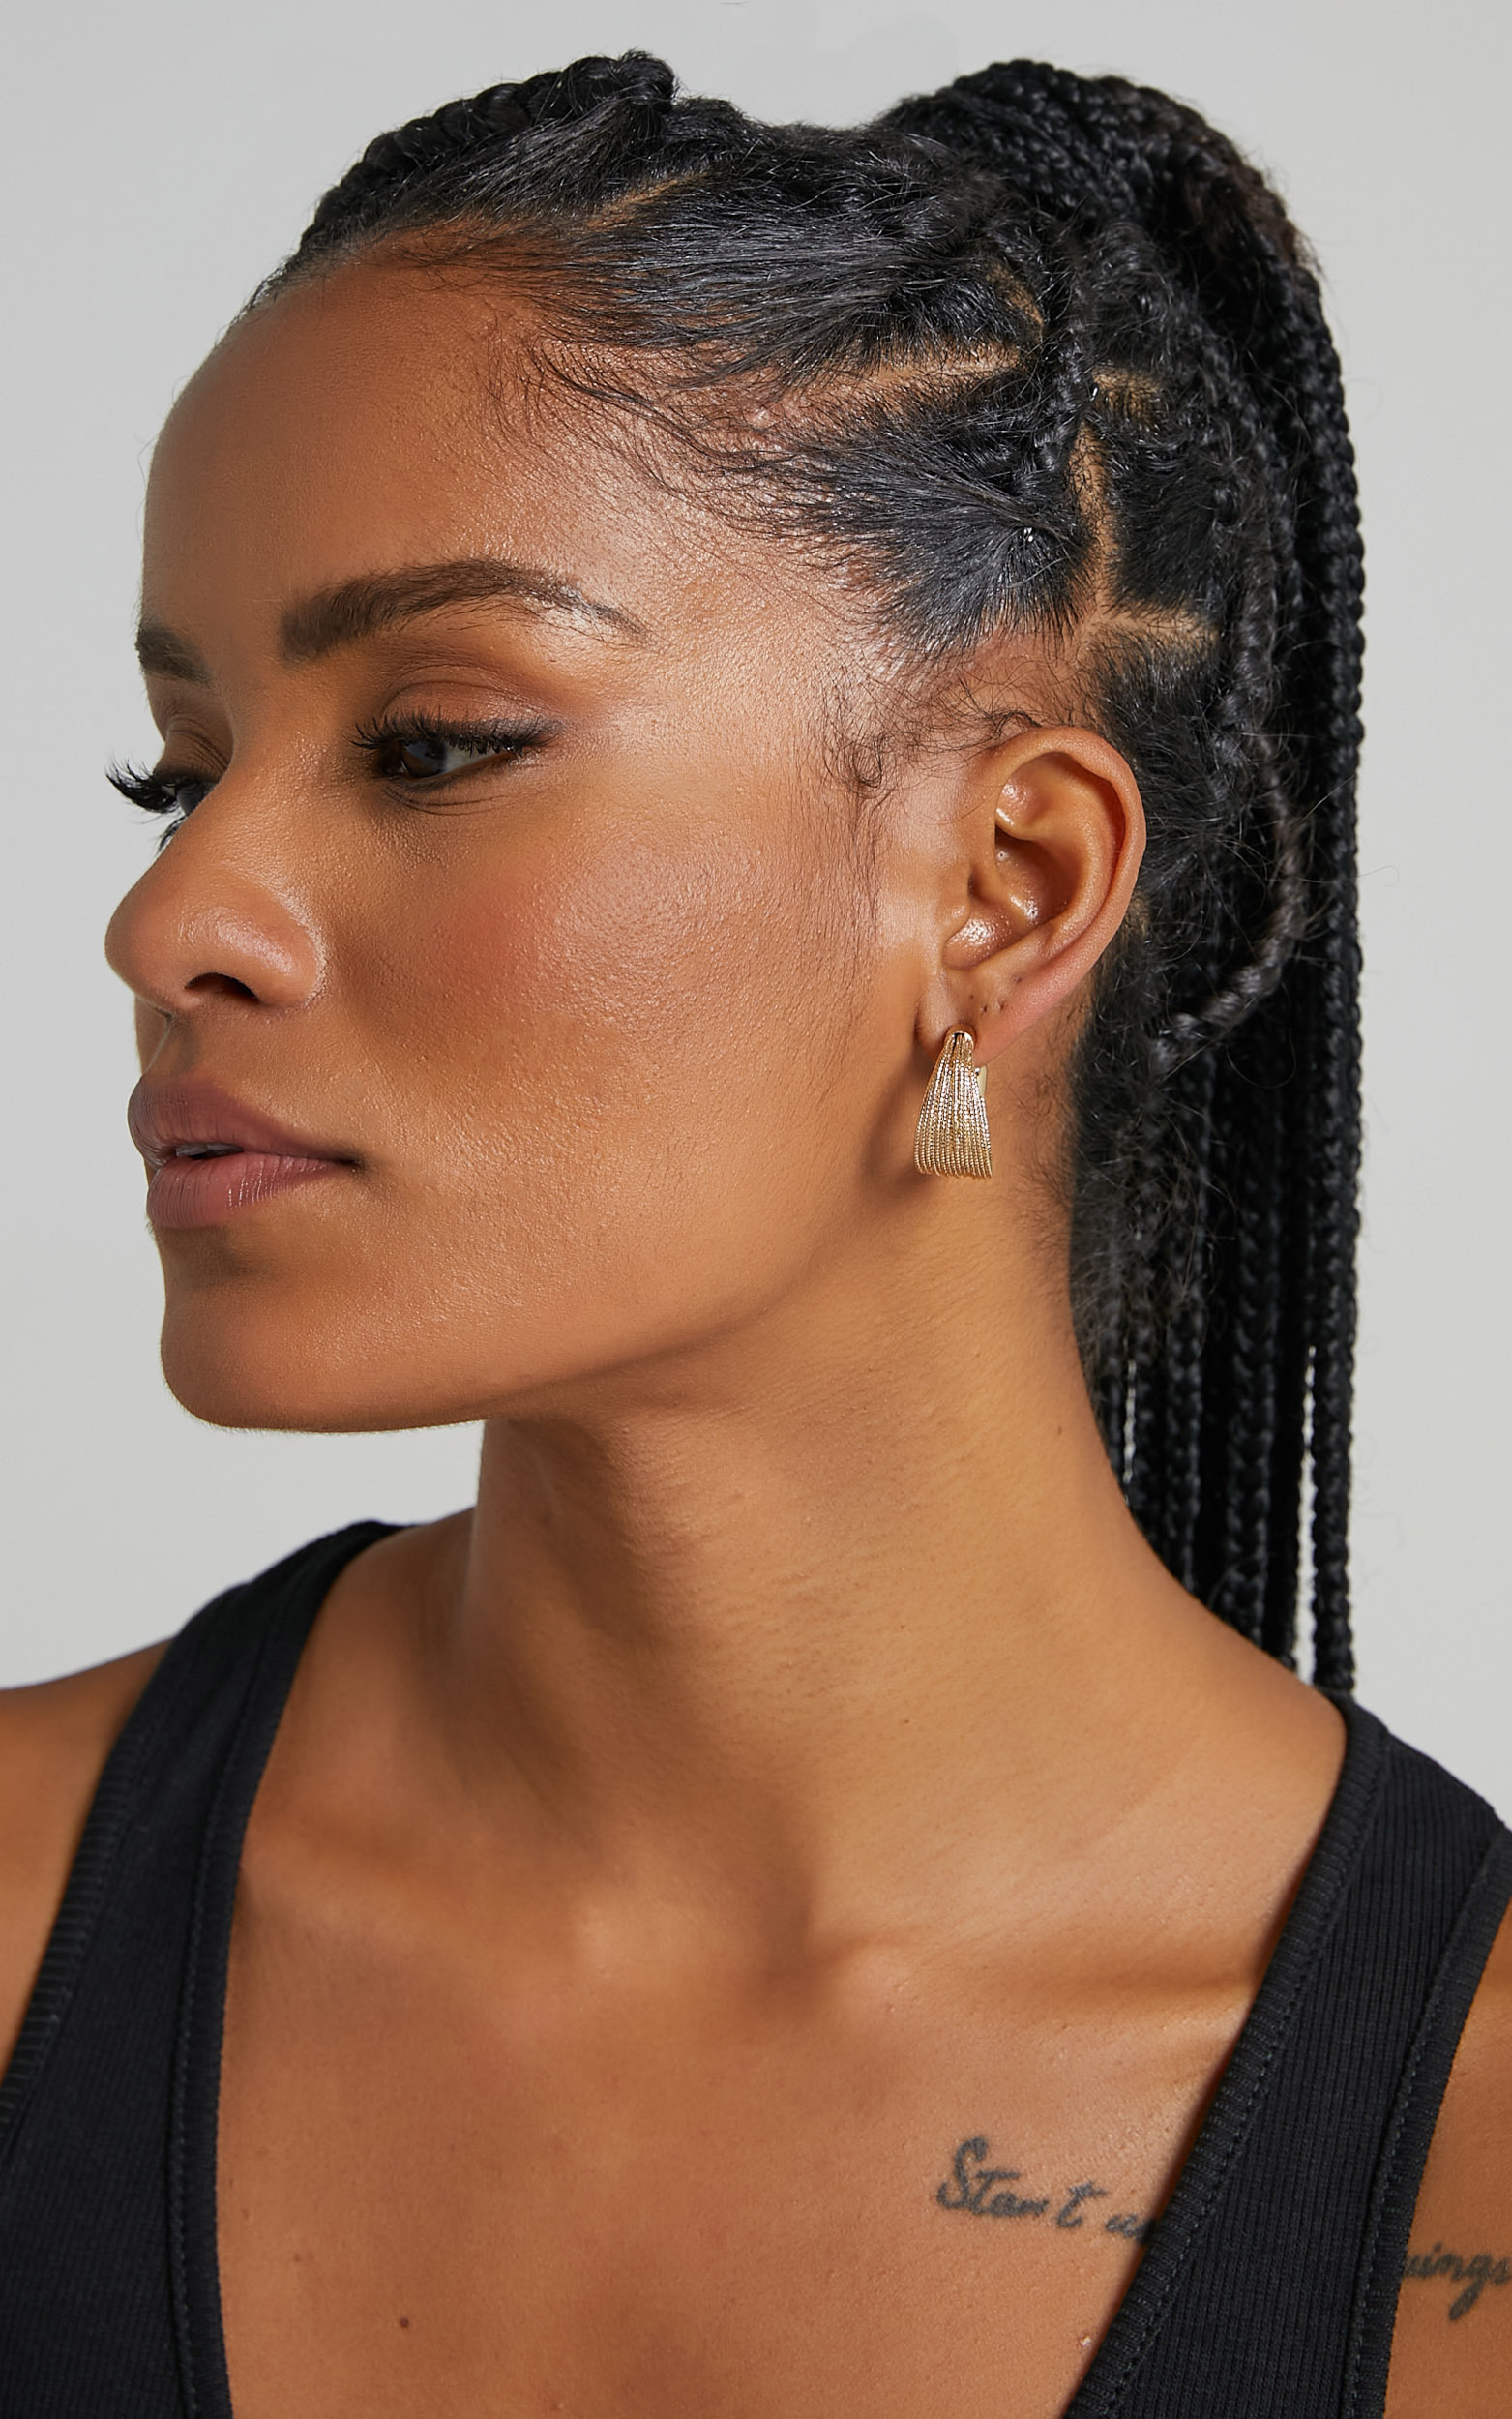 Claud Earrings in Gold, GLD1, hi-res image number null